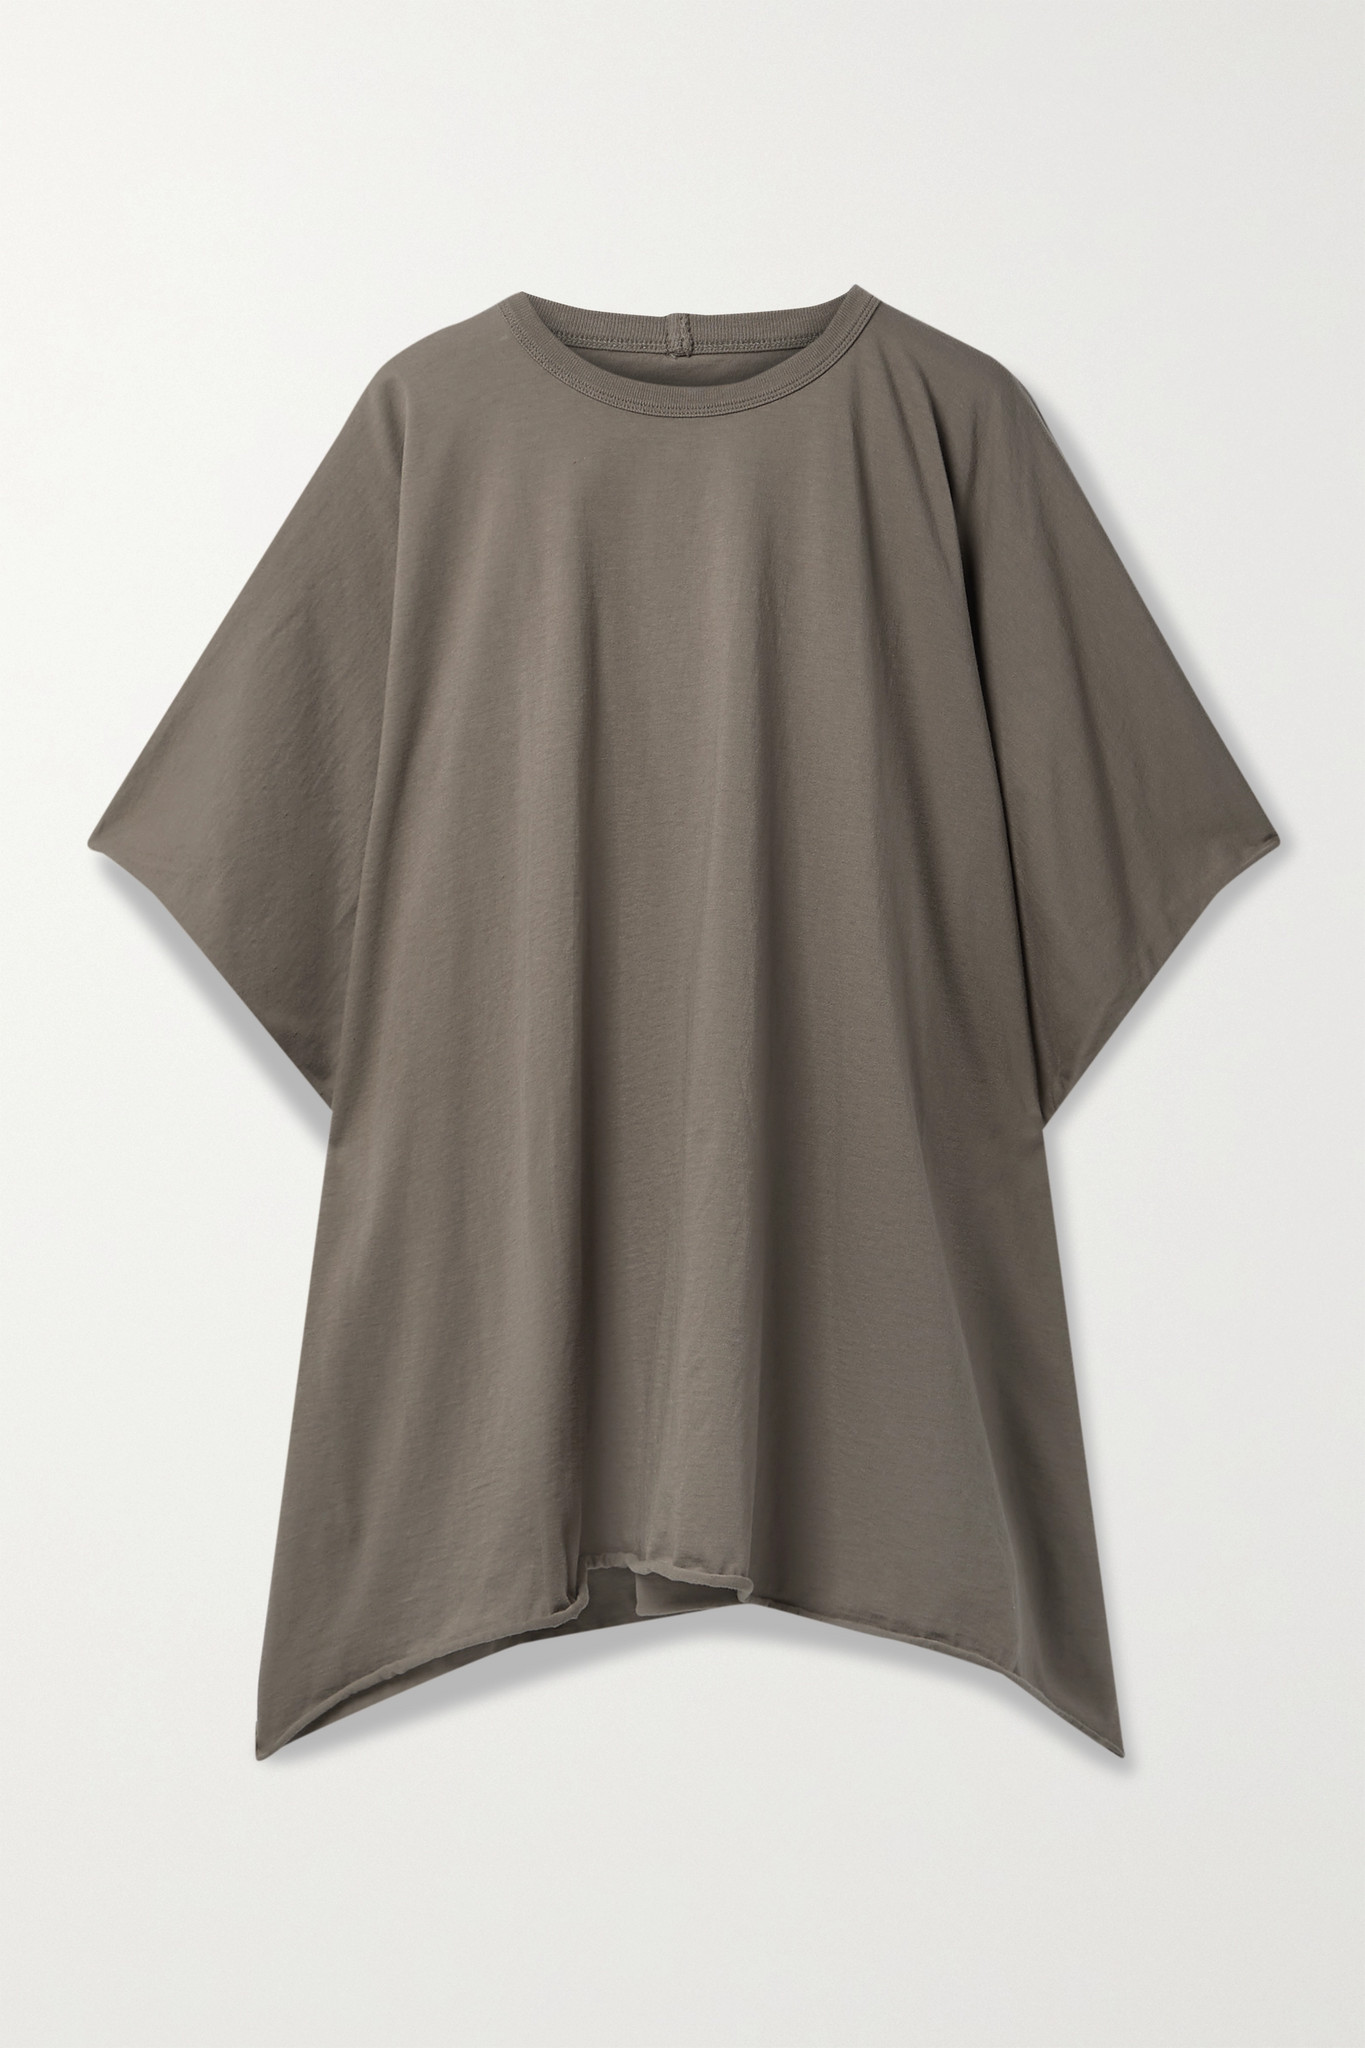 RICK OWENS - Minerva Cotton-jersey T-shirt - Brown - IT40